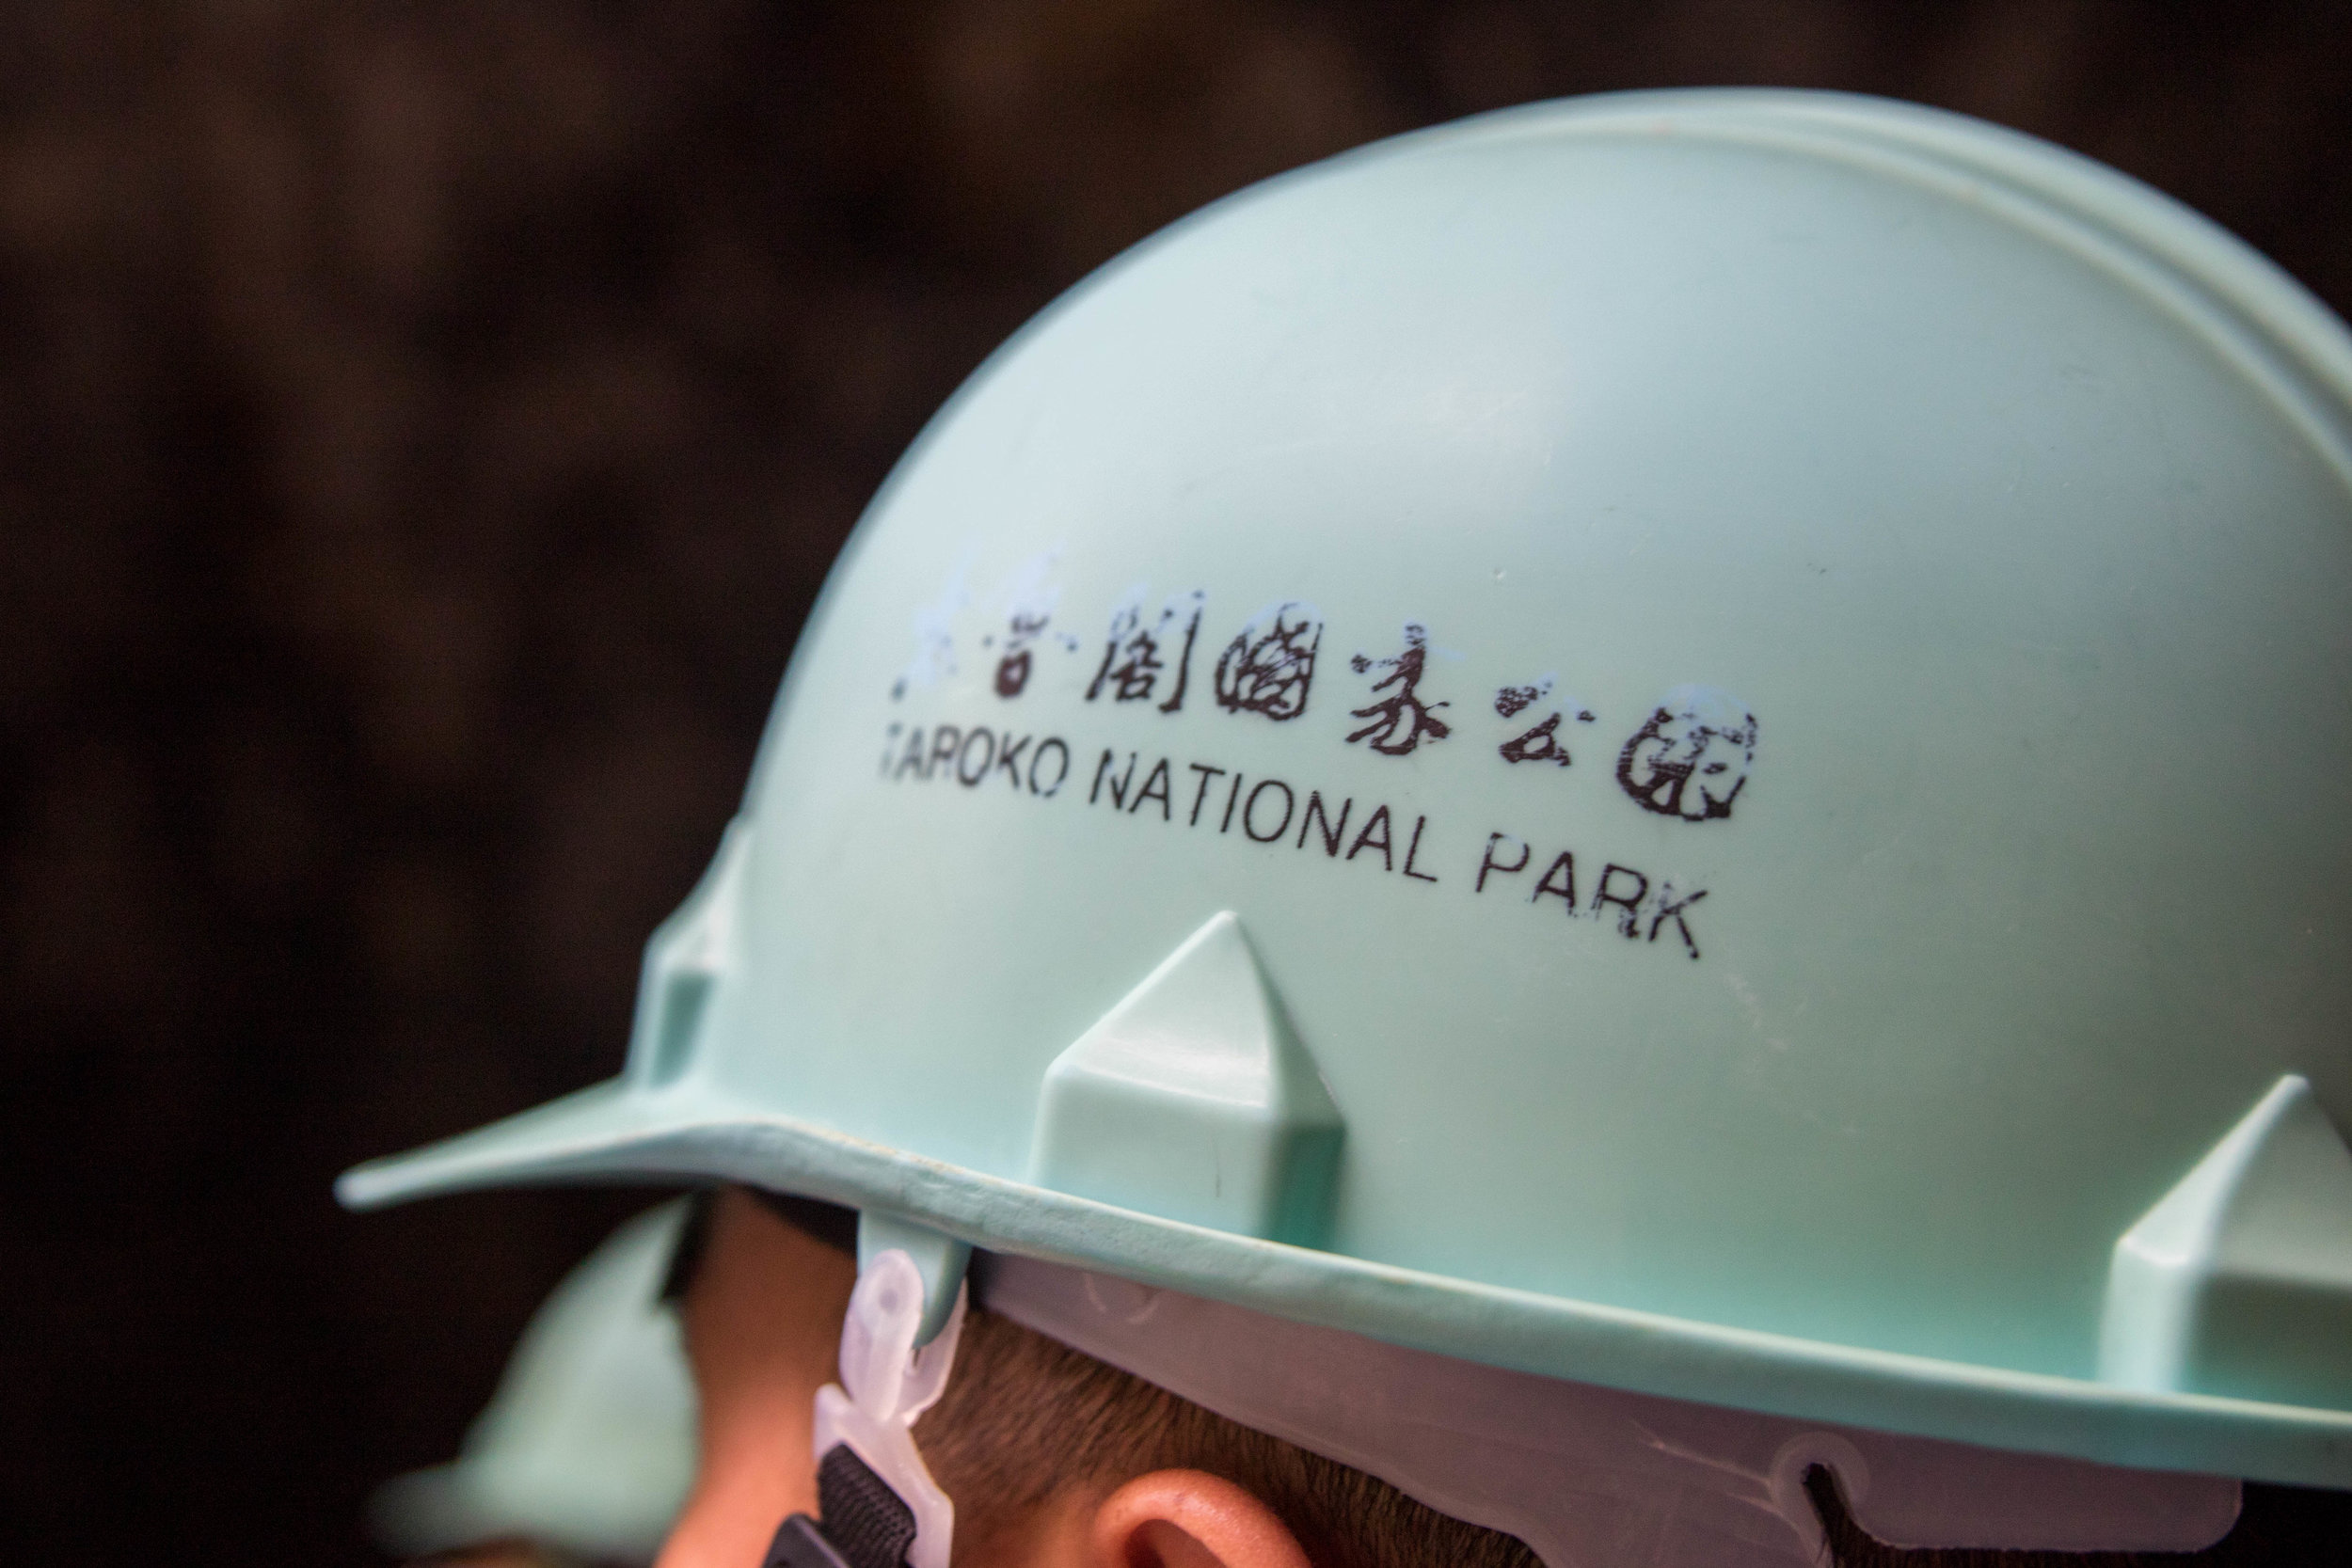 We got these nifty hardhats to protect our tiny heads from rock slides